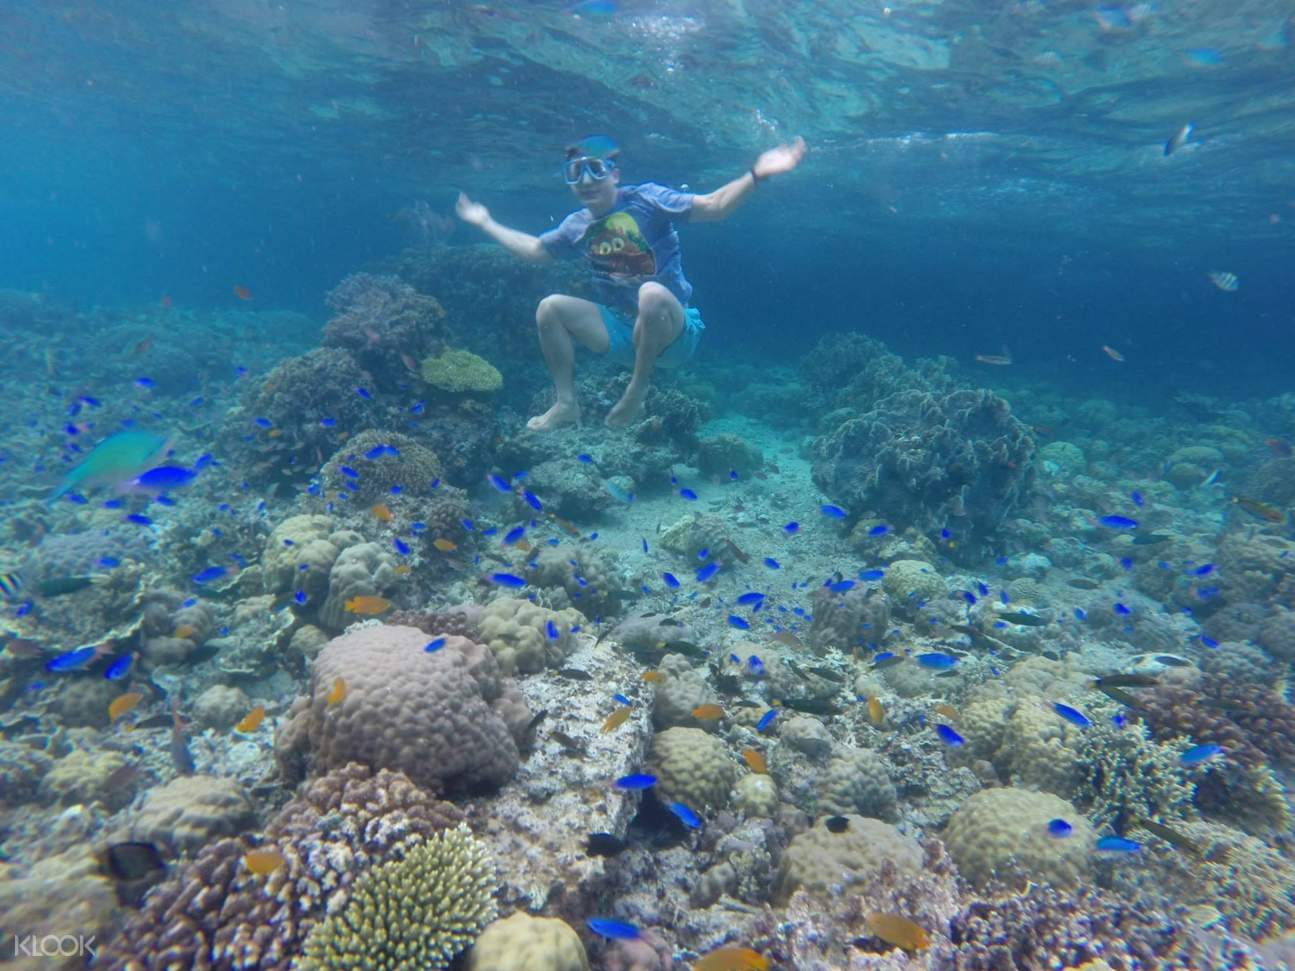 Corals at Pescador Island Snorkeling Join In Day Tour from Cebu